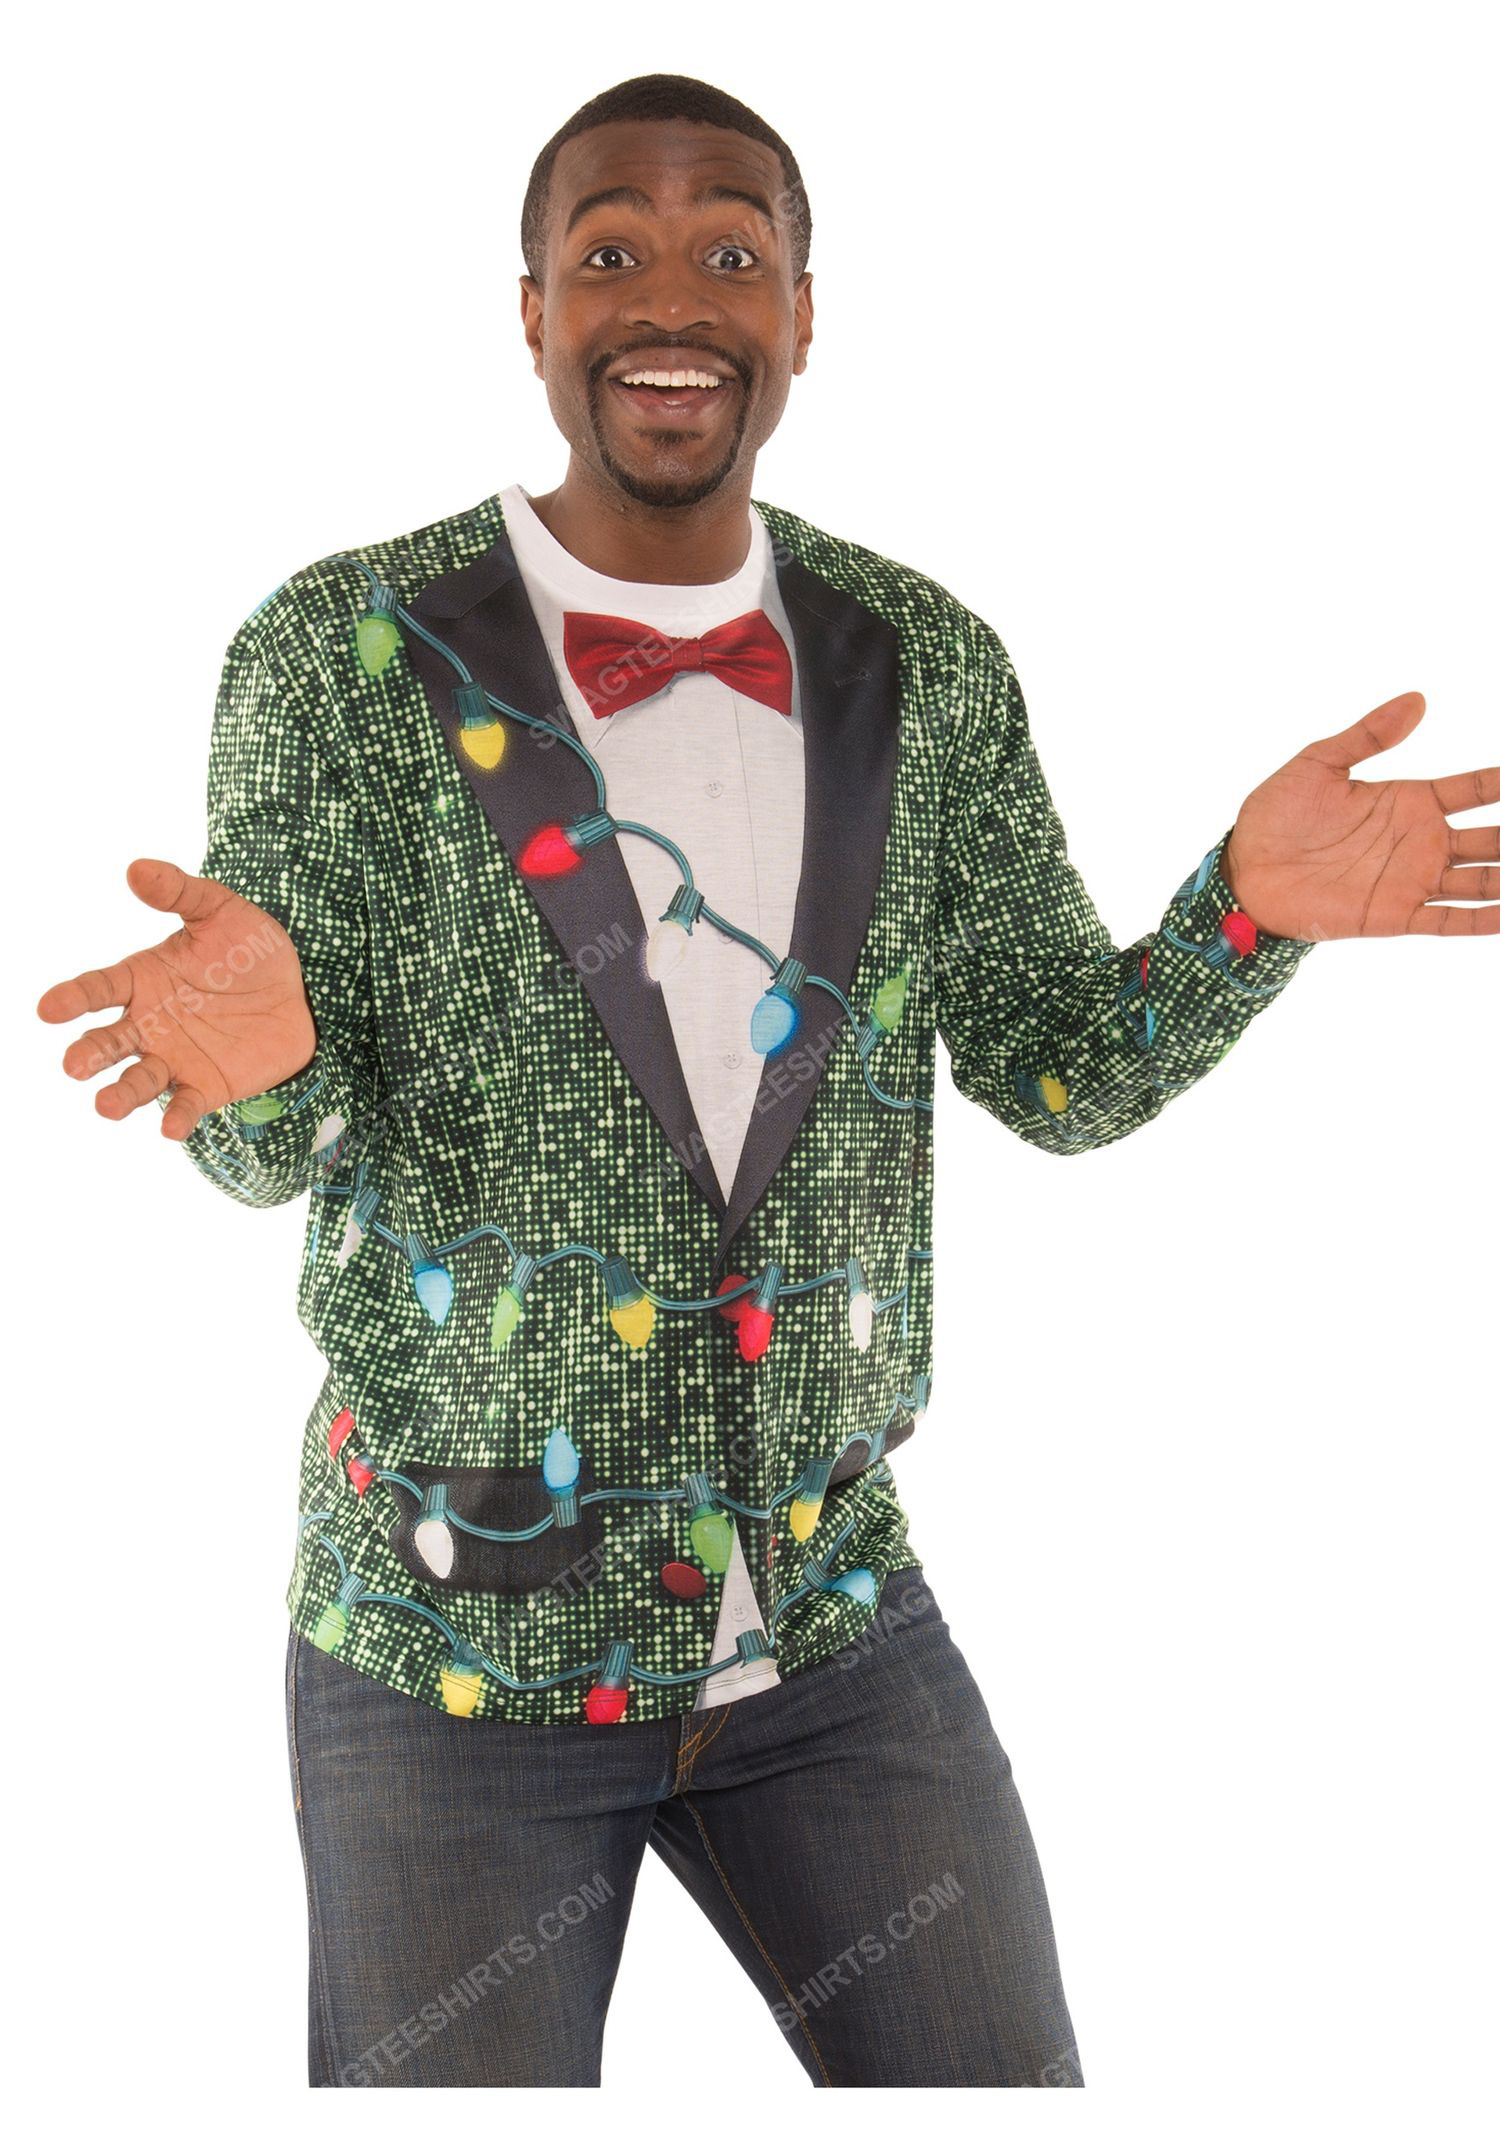 Christmas holiday sequin suit with lights full print ugly christmas sweater 2 - Copy